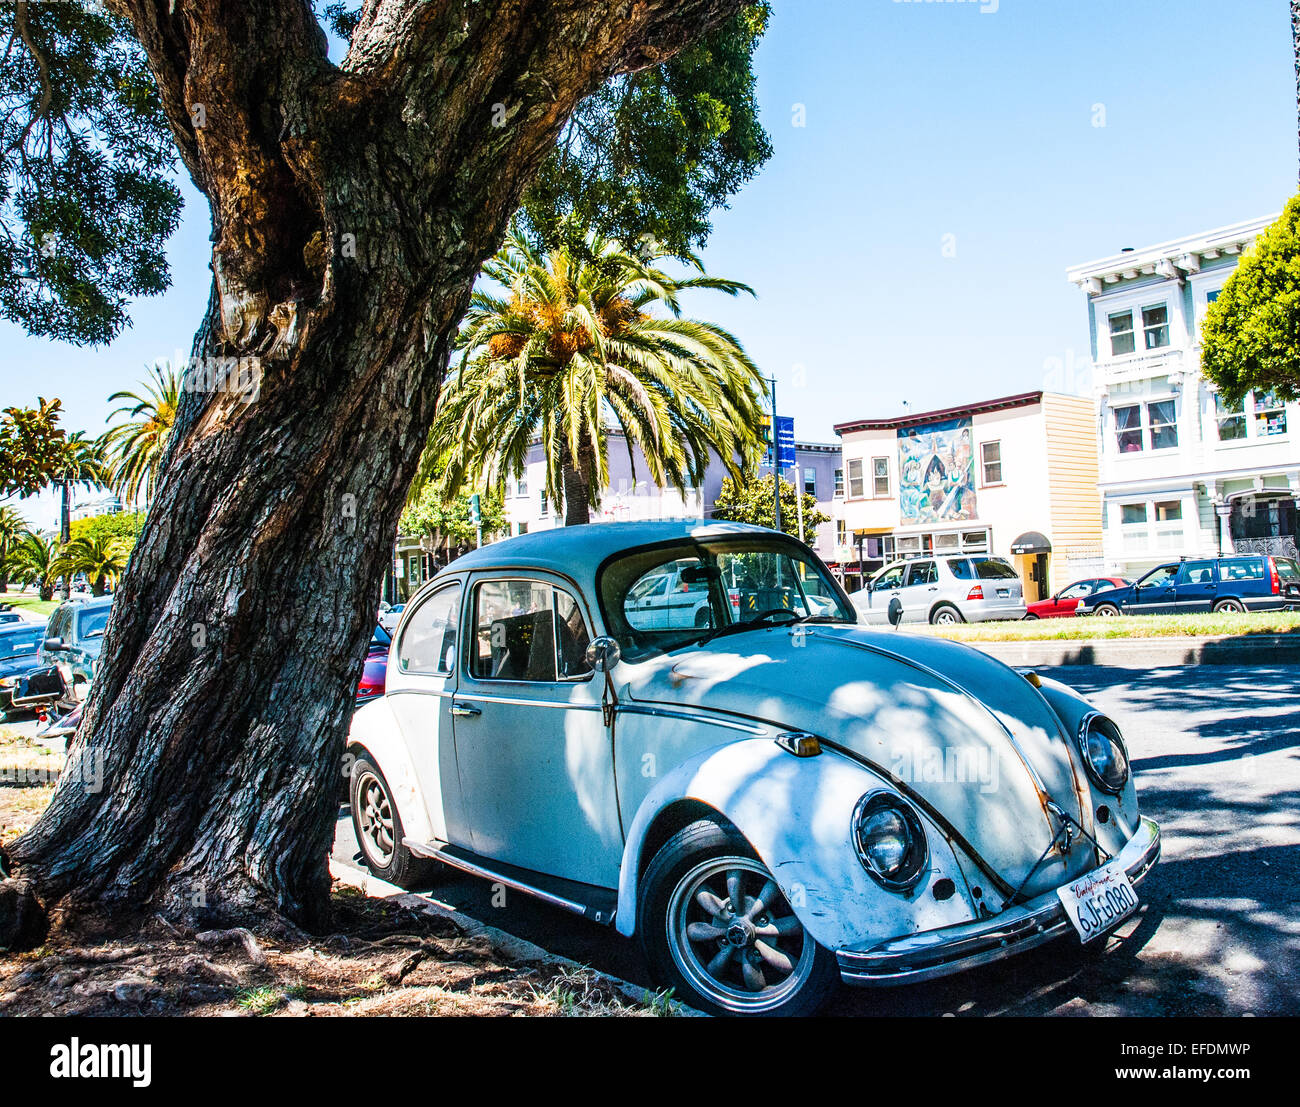 Old VW Beetle in the shade of a tree. - Stock Image